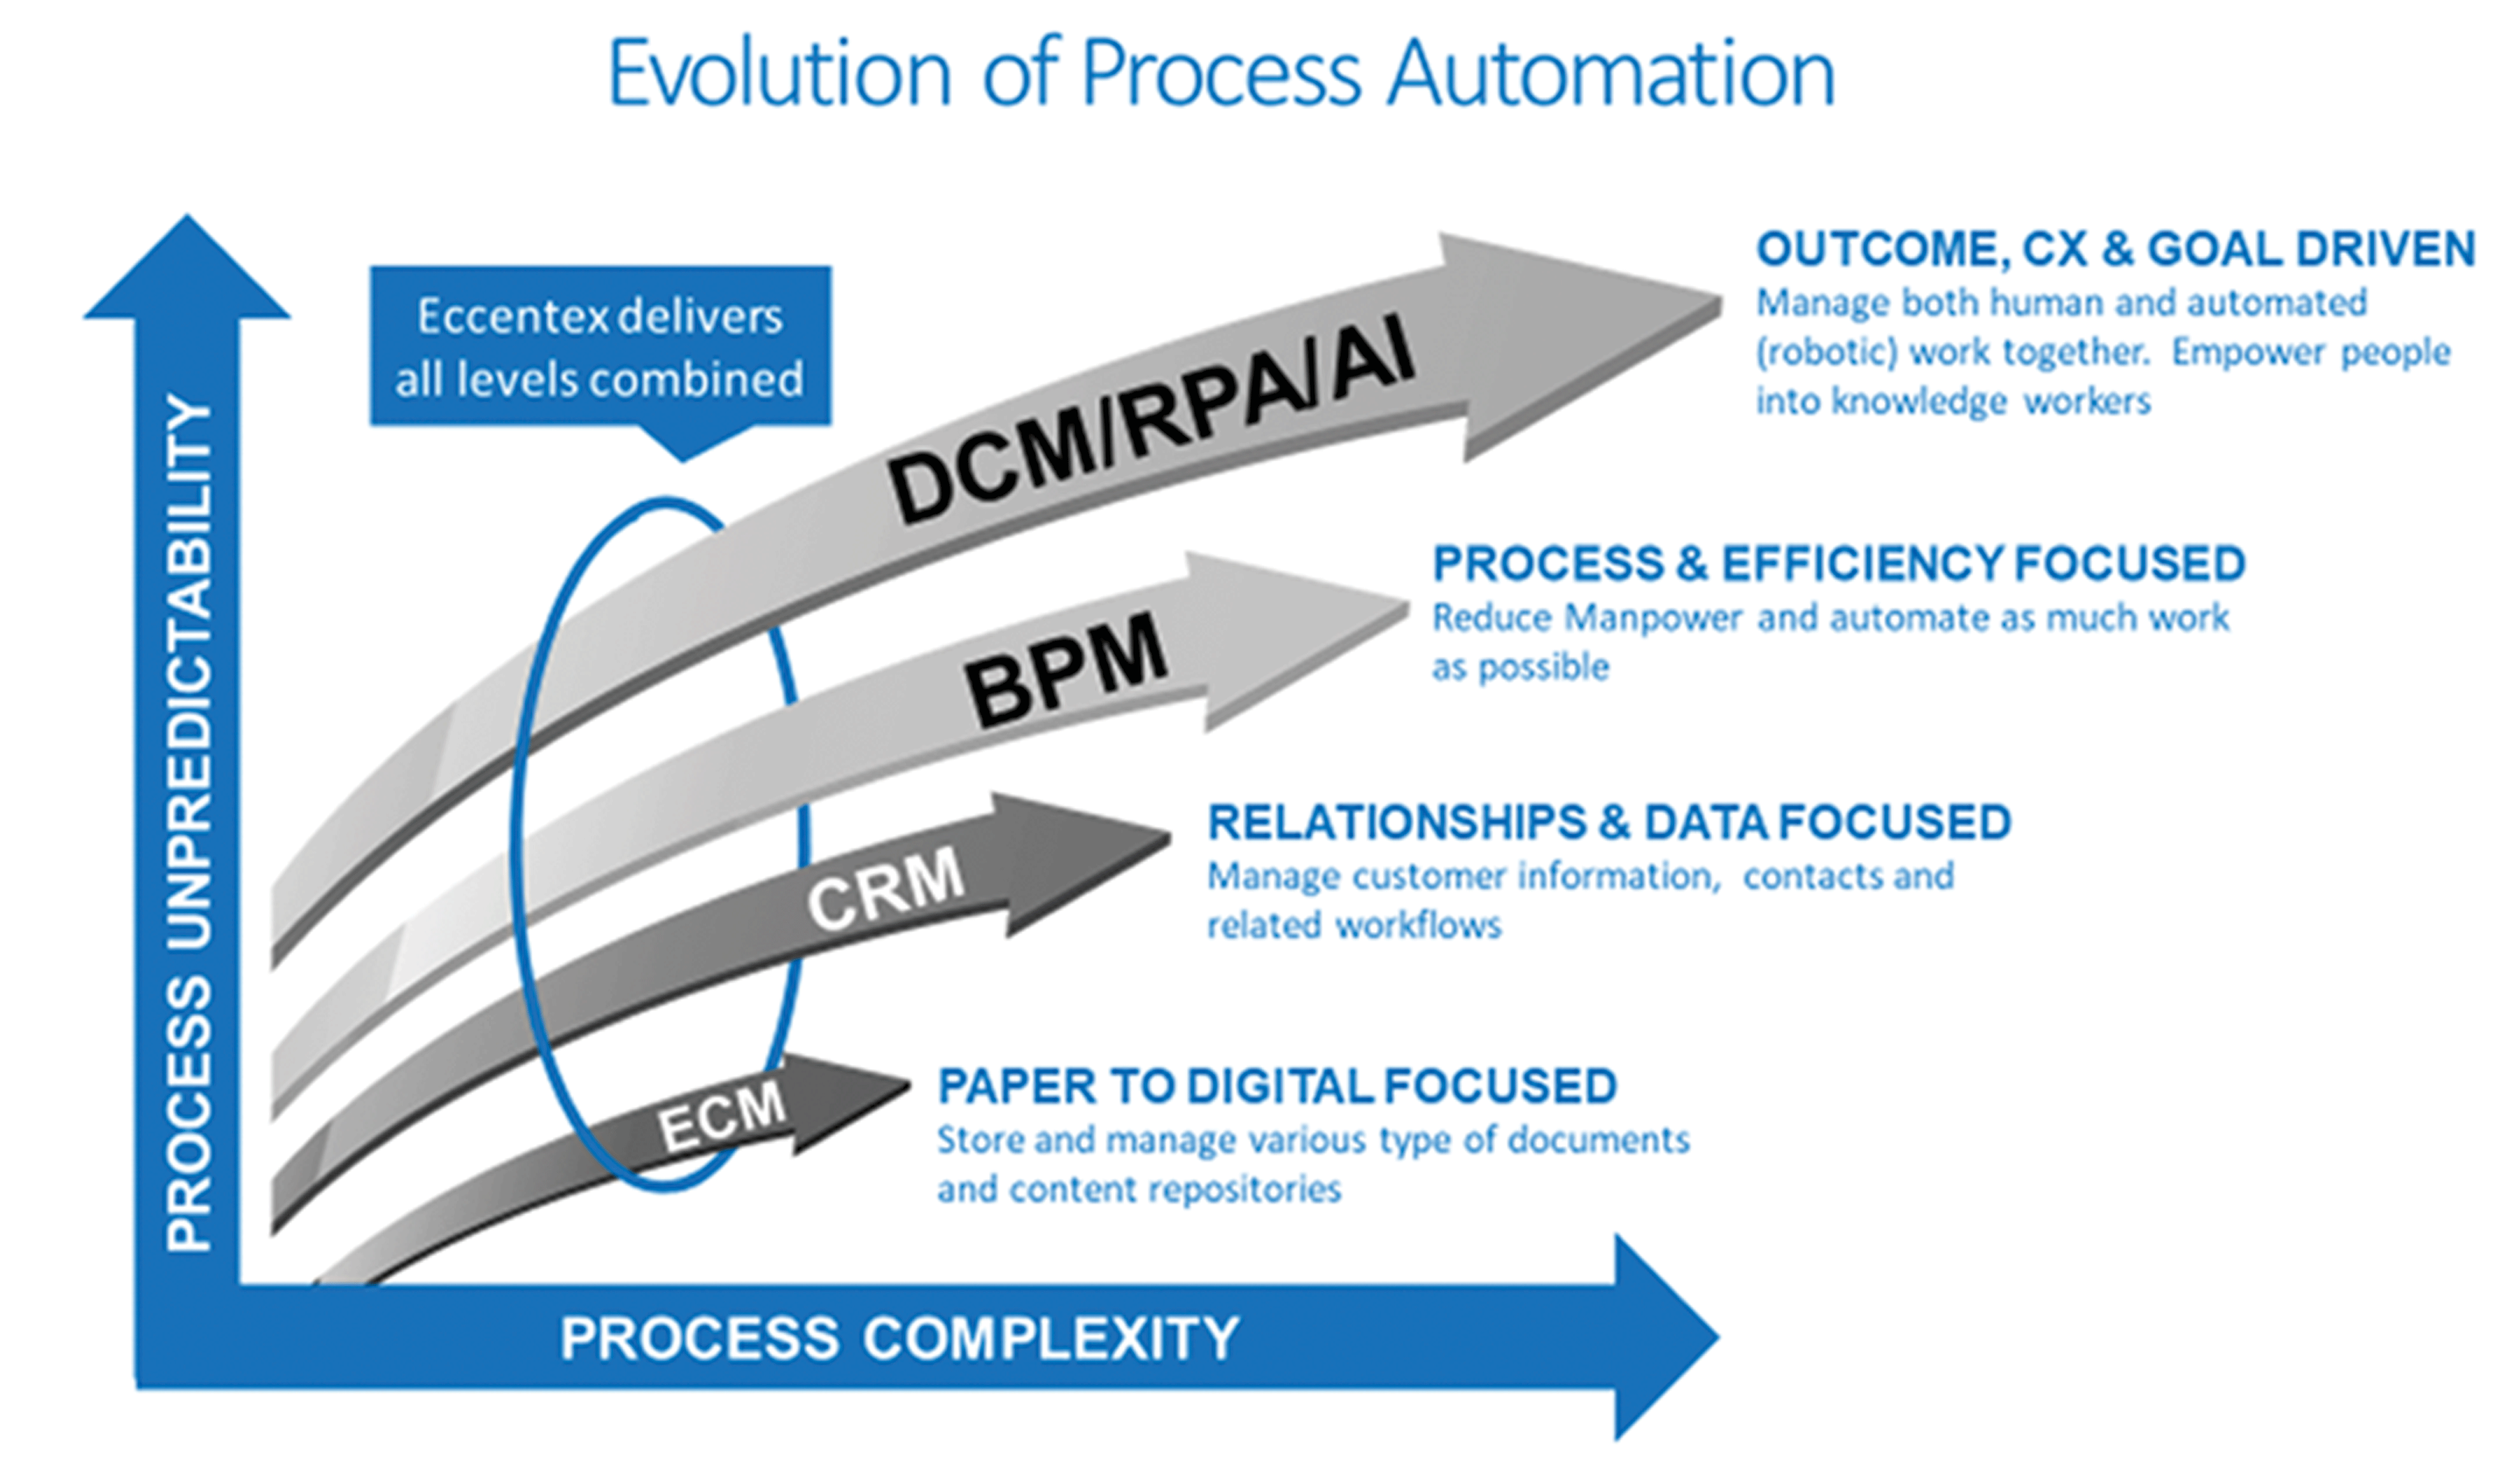 Evolution or Process Automation